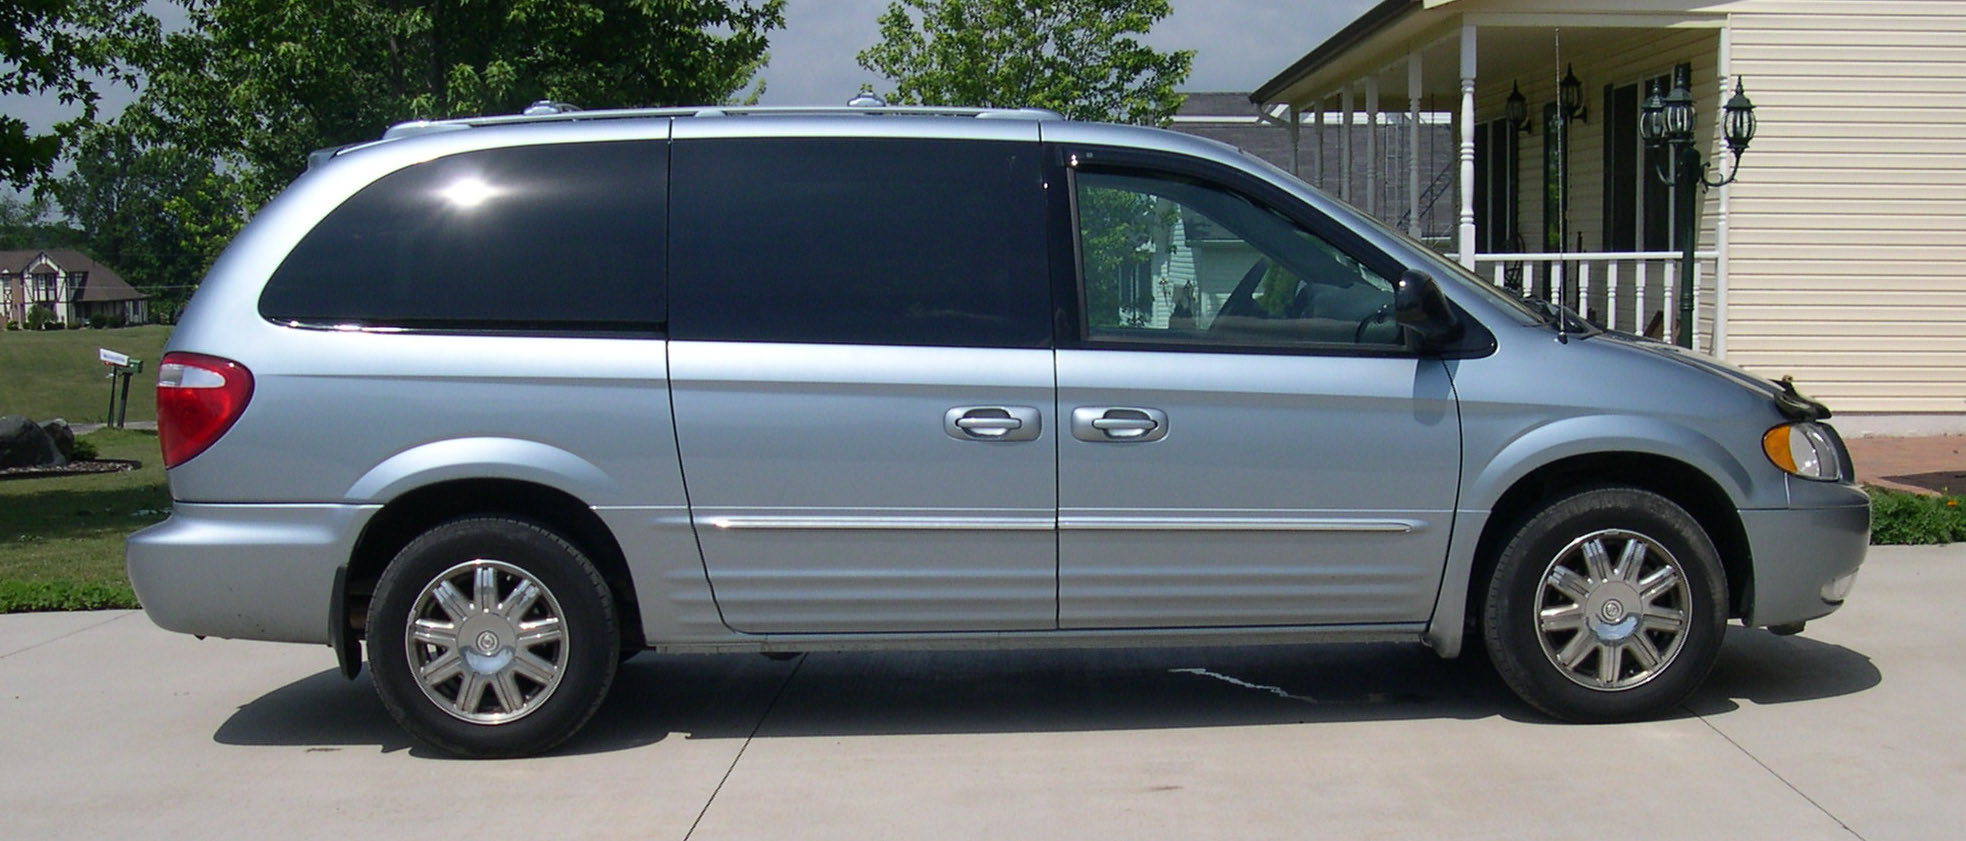 2005 chrysler town and country information and photos momentcar. Cars Review. Best American Auto & Cars Review